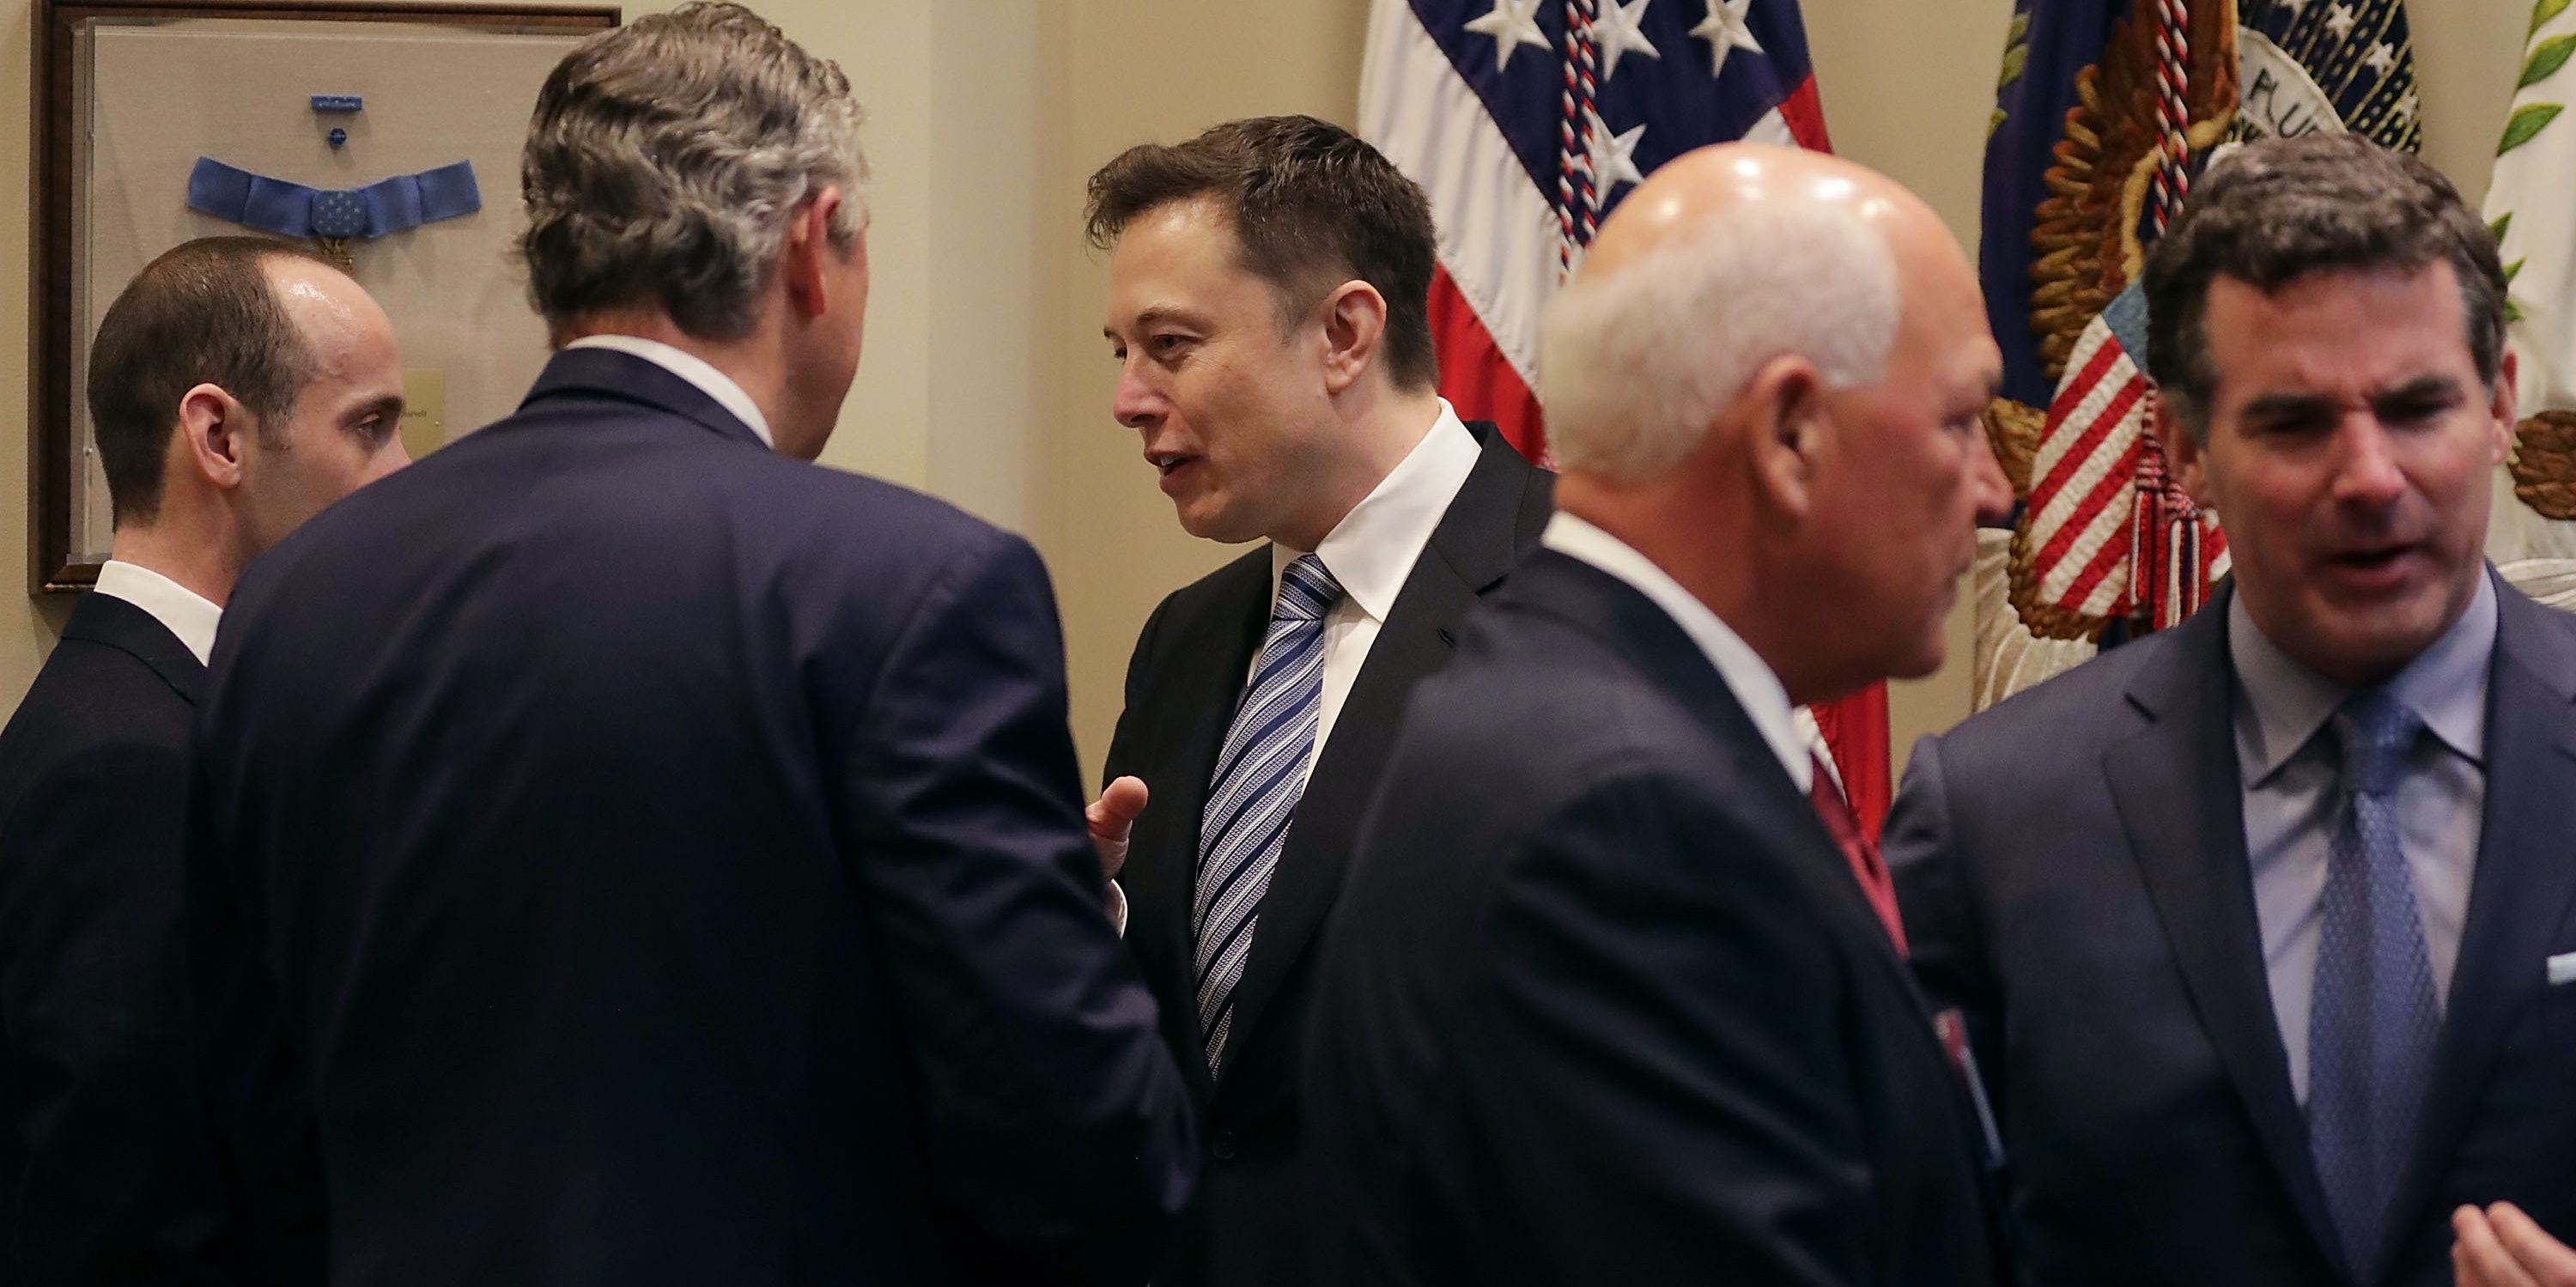 WASHINGTON, DC - JANUARY 23:  White House Senior Advisor Stephen Miller (L) and Klaus Kleinfeld of Arconic visit with Elon Musk (C) of SpaceX before a meeting with U.S. President Donald Trump in the Roosevelt Room at the White House January 23, 2017 in Washington, DC. Business leaders who also attend the meeting included Elon Musk of SpaceX, Mark Sutton of International Paper, Michael Dell of Dell Technologies, Marillyn Hewson of Lockheed Martin, Andrew Liveris of Dow Chemical and others.  (Photo by Chip Somodevilla/Getty Images)